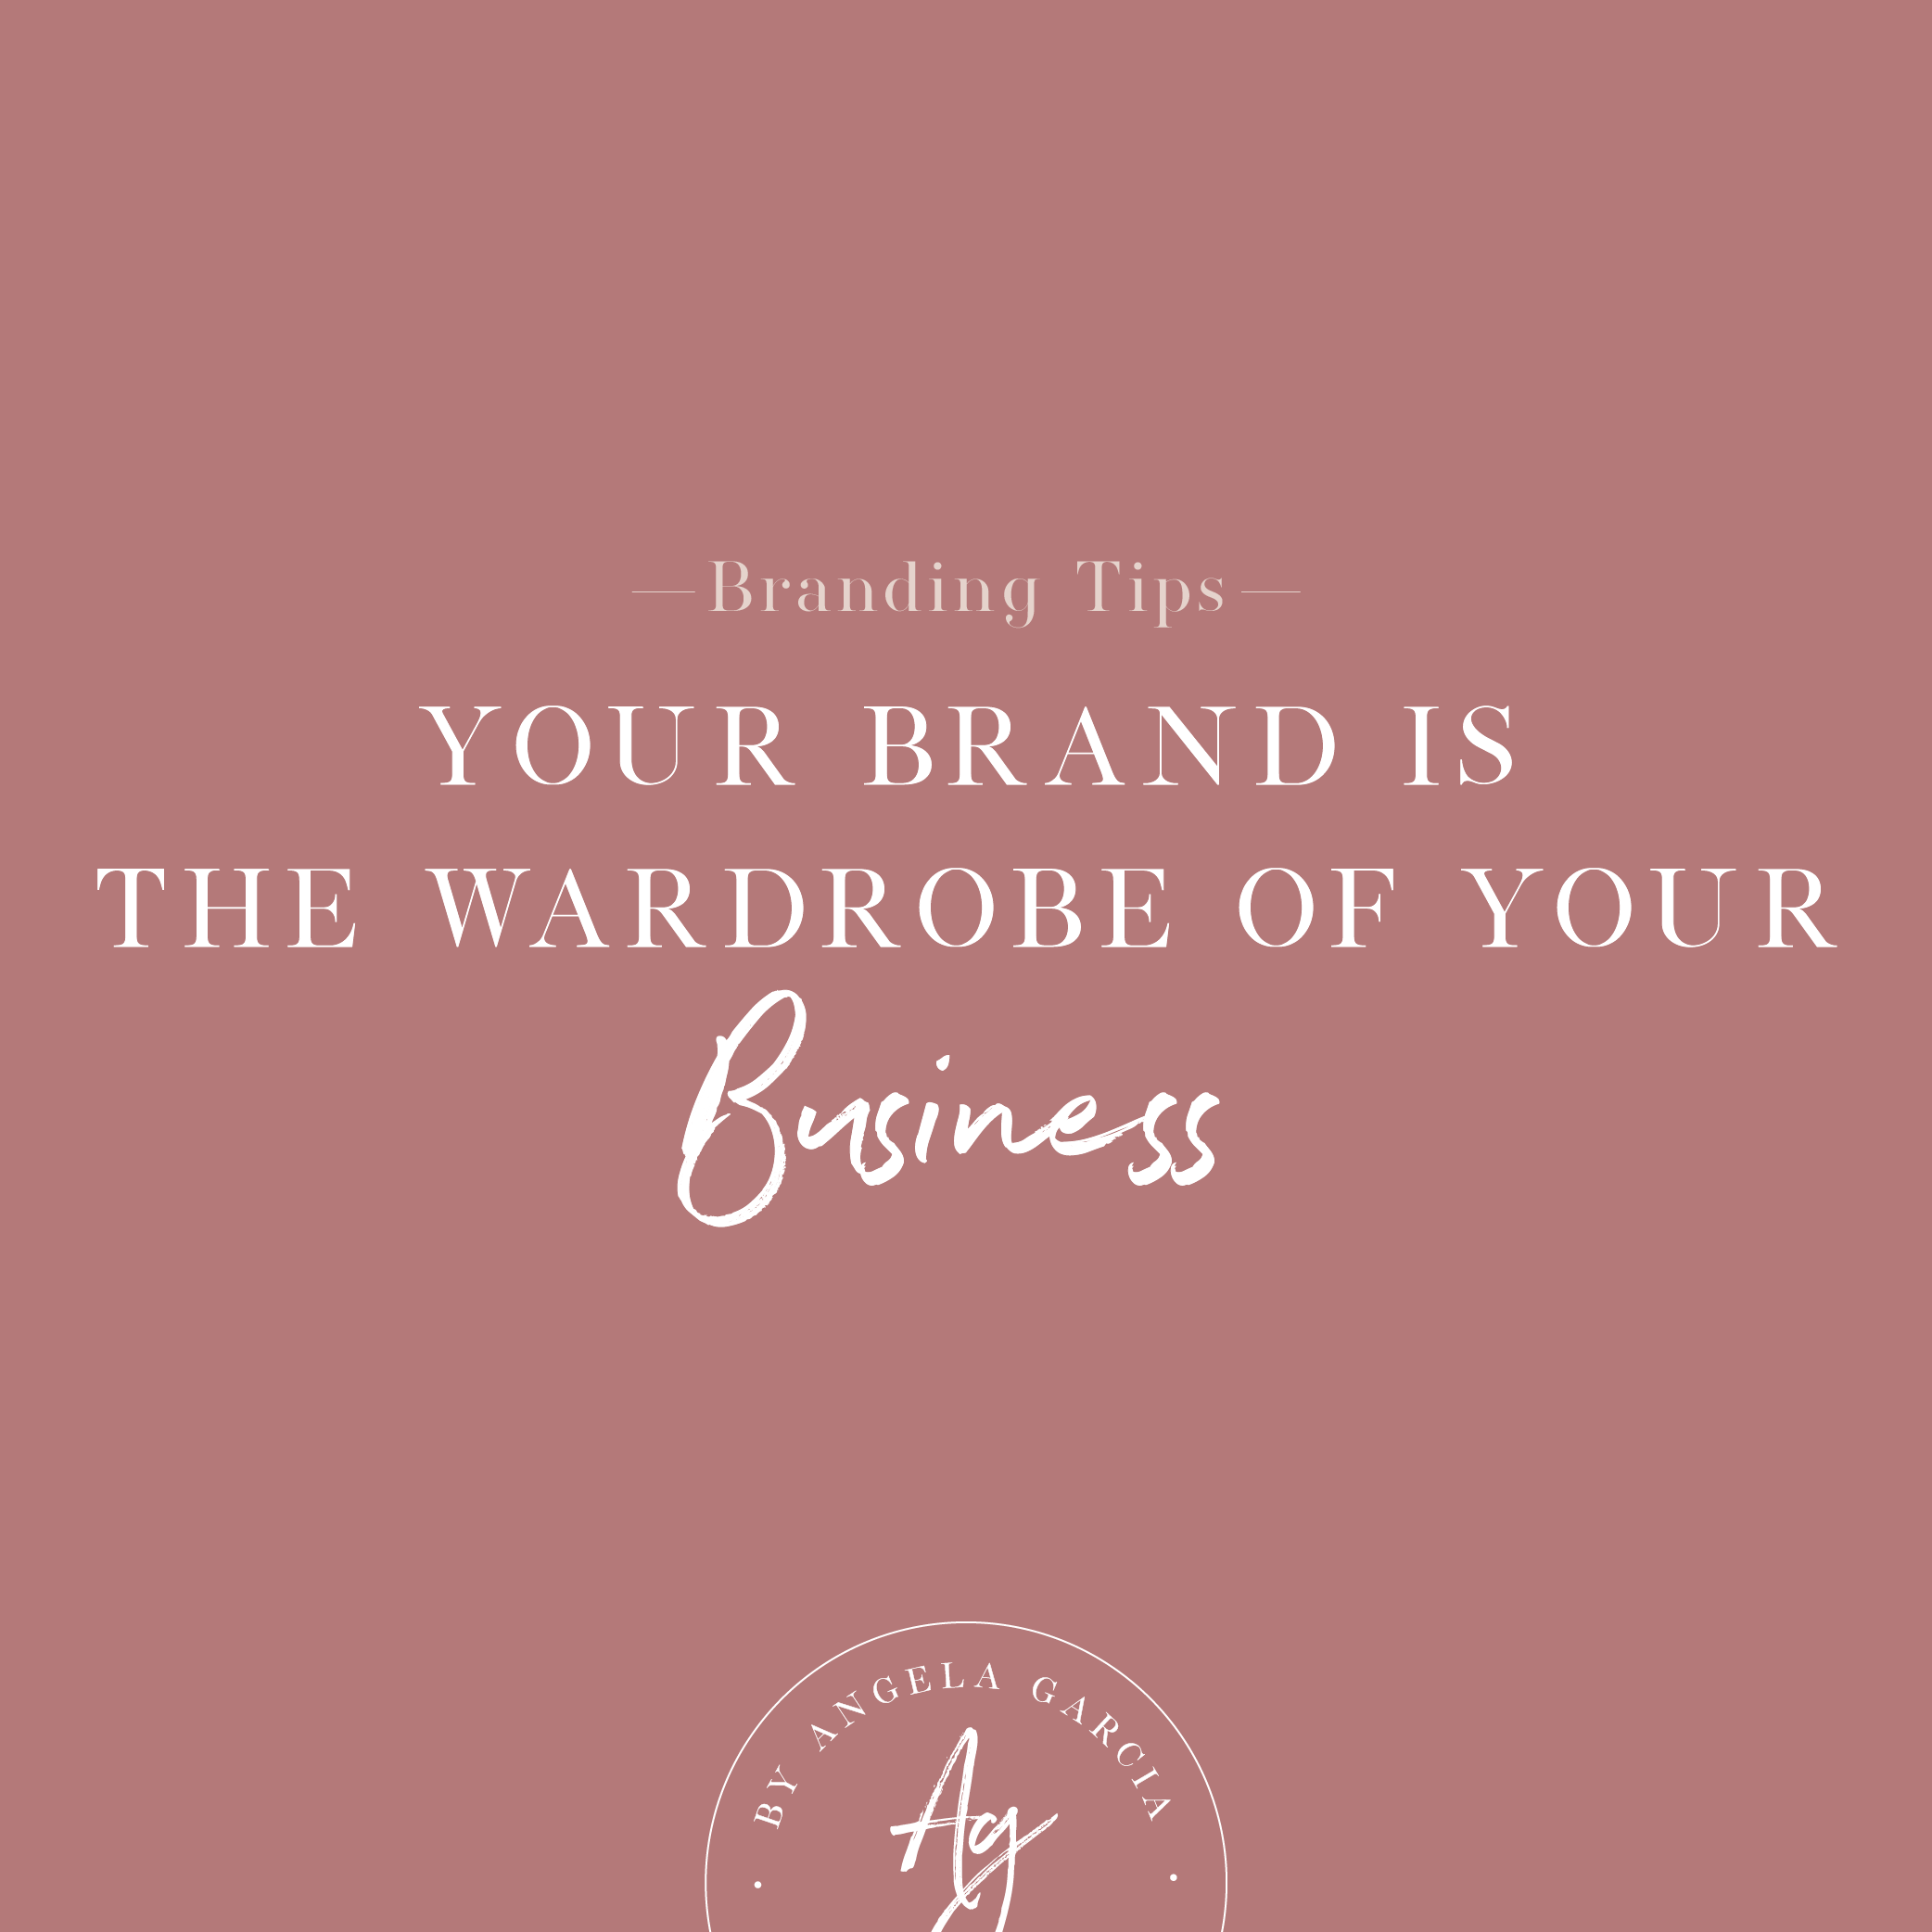 Your brand is the wardrobe of your business